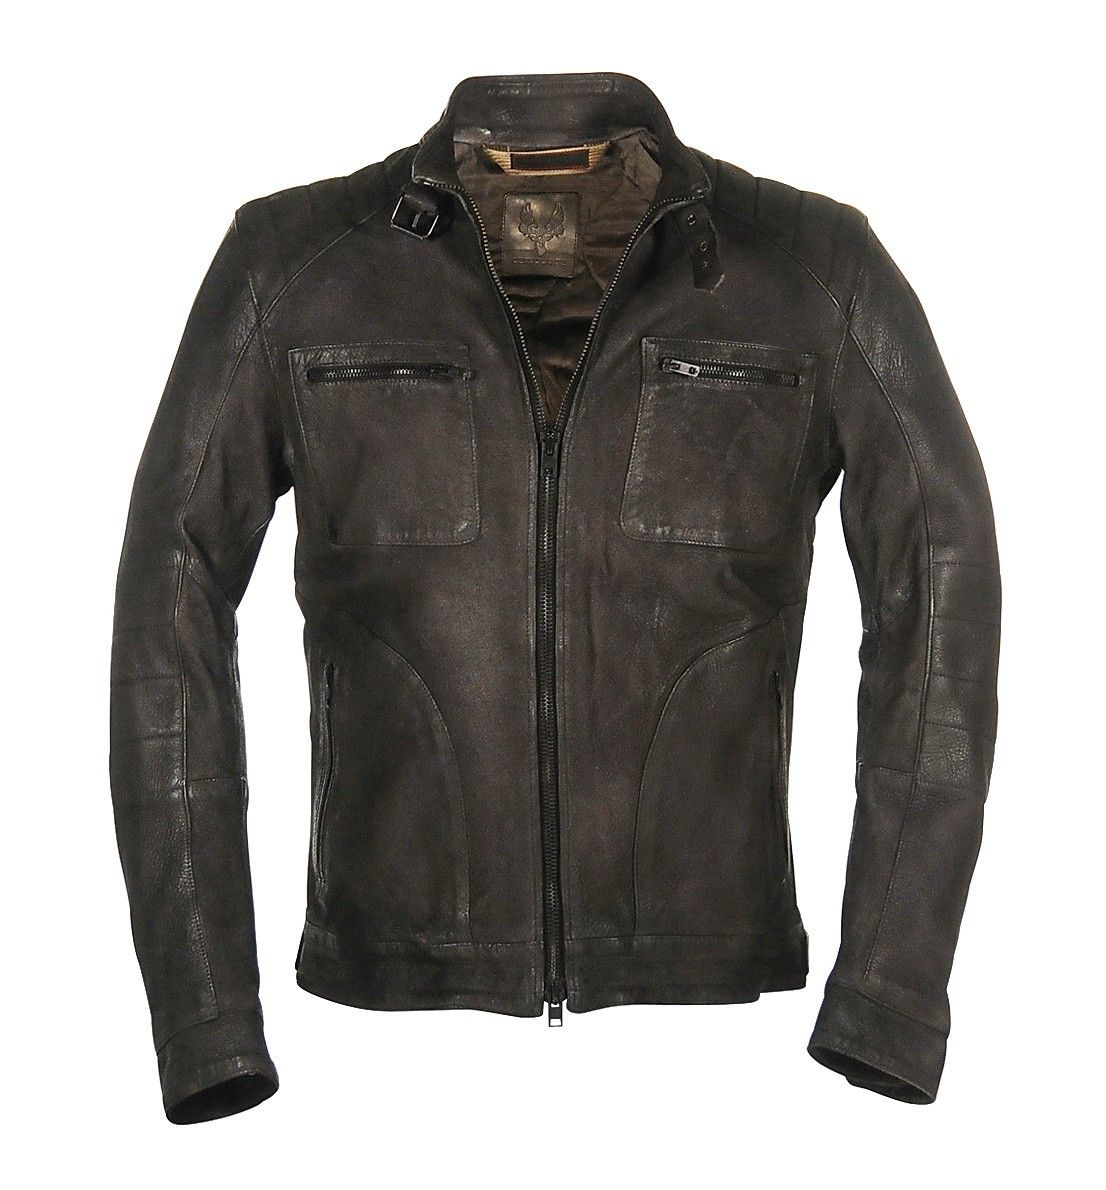 CERVOLANTE - Lederjacke - Biker Deer Leather Jacket - Dark Gray